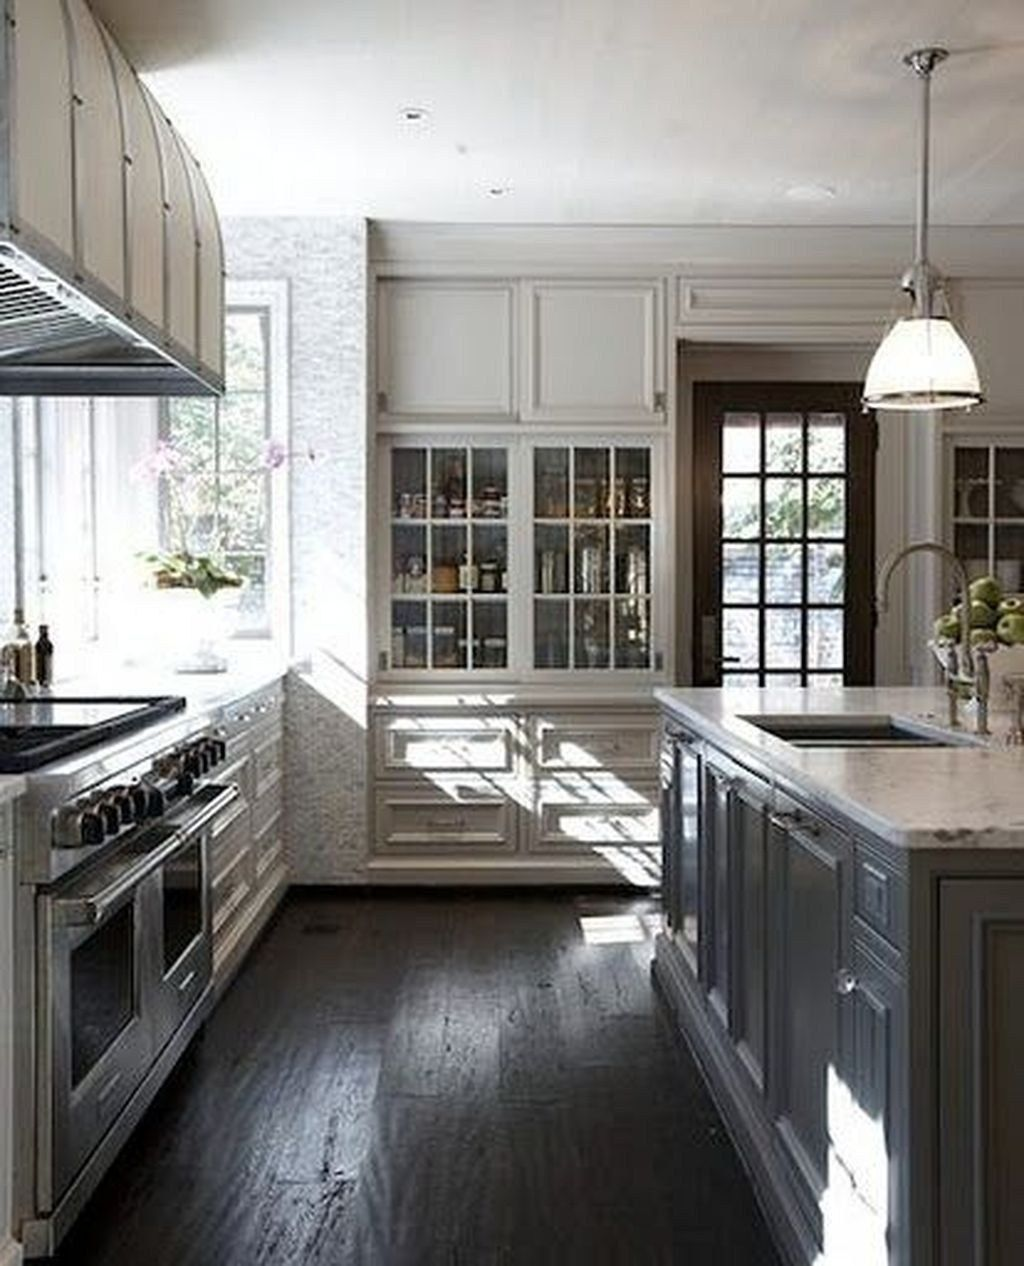 25+ Top Soft Grey Cabinet Design Ideas For Your Kitchen in ...